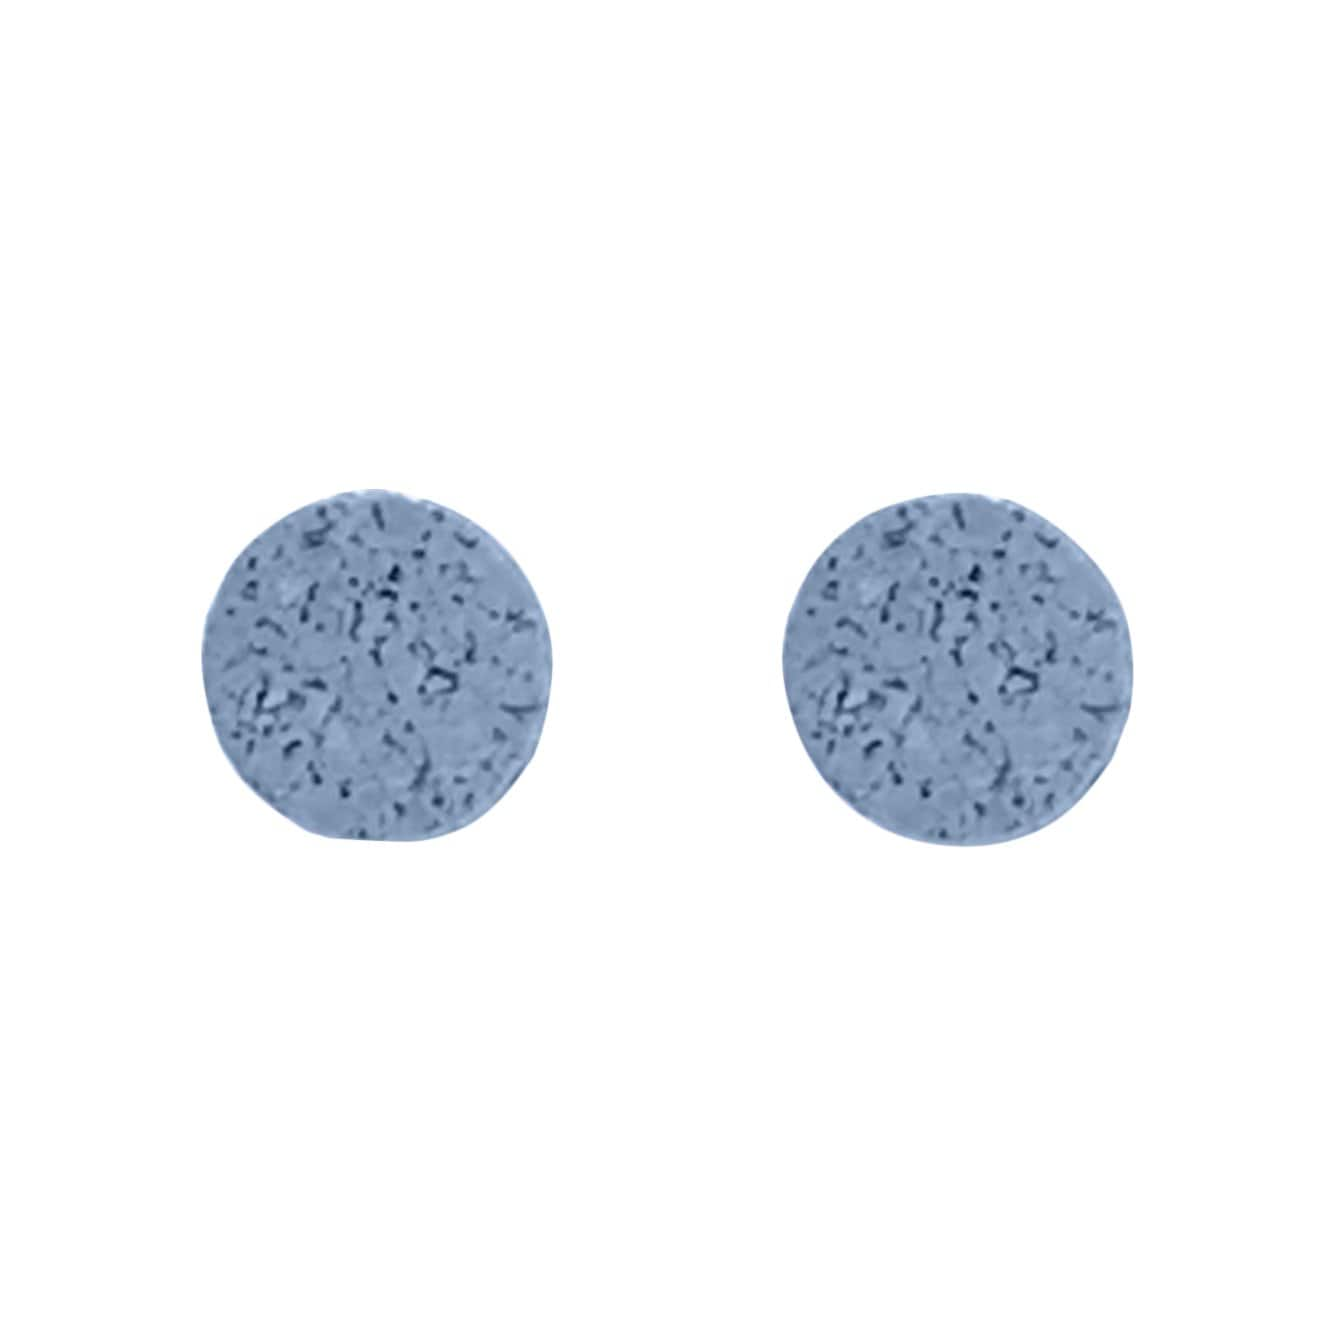 Champ.Co Earrings Blue Simple Studs